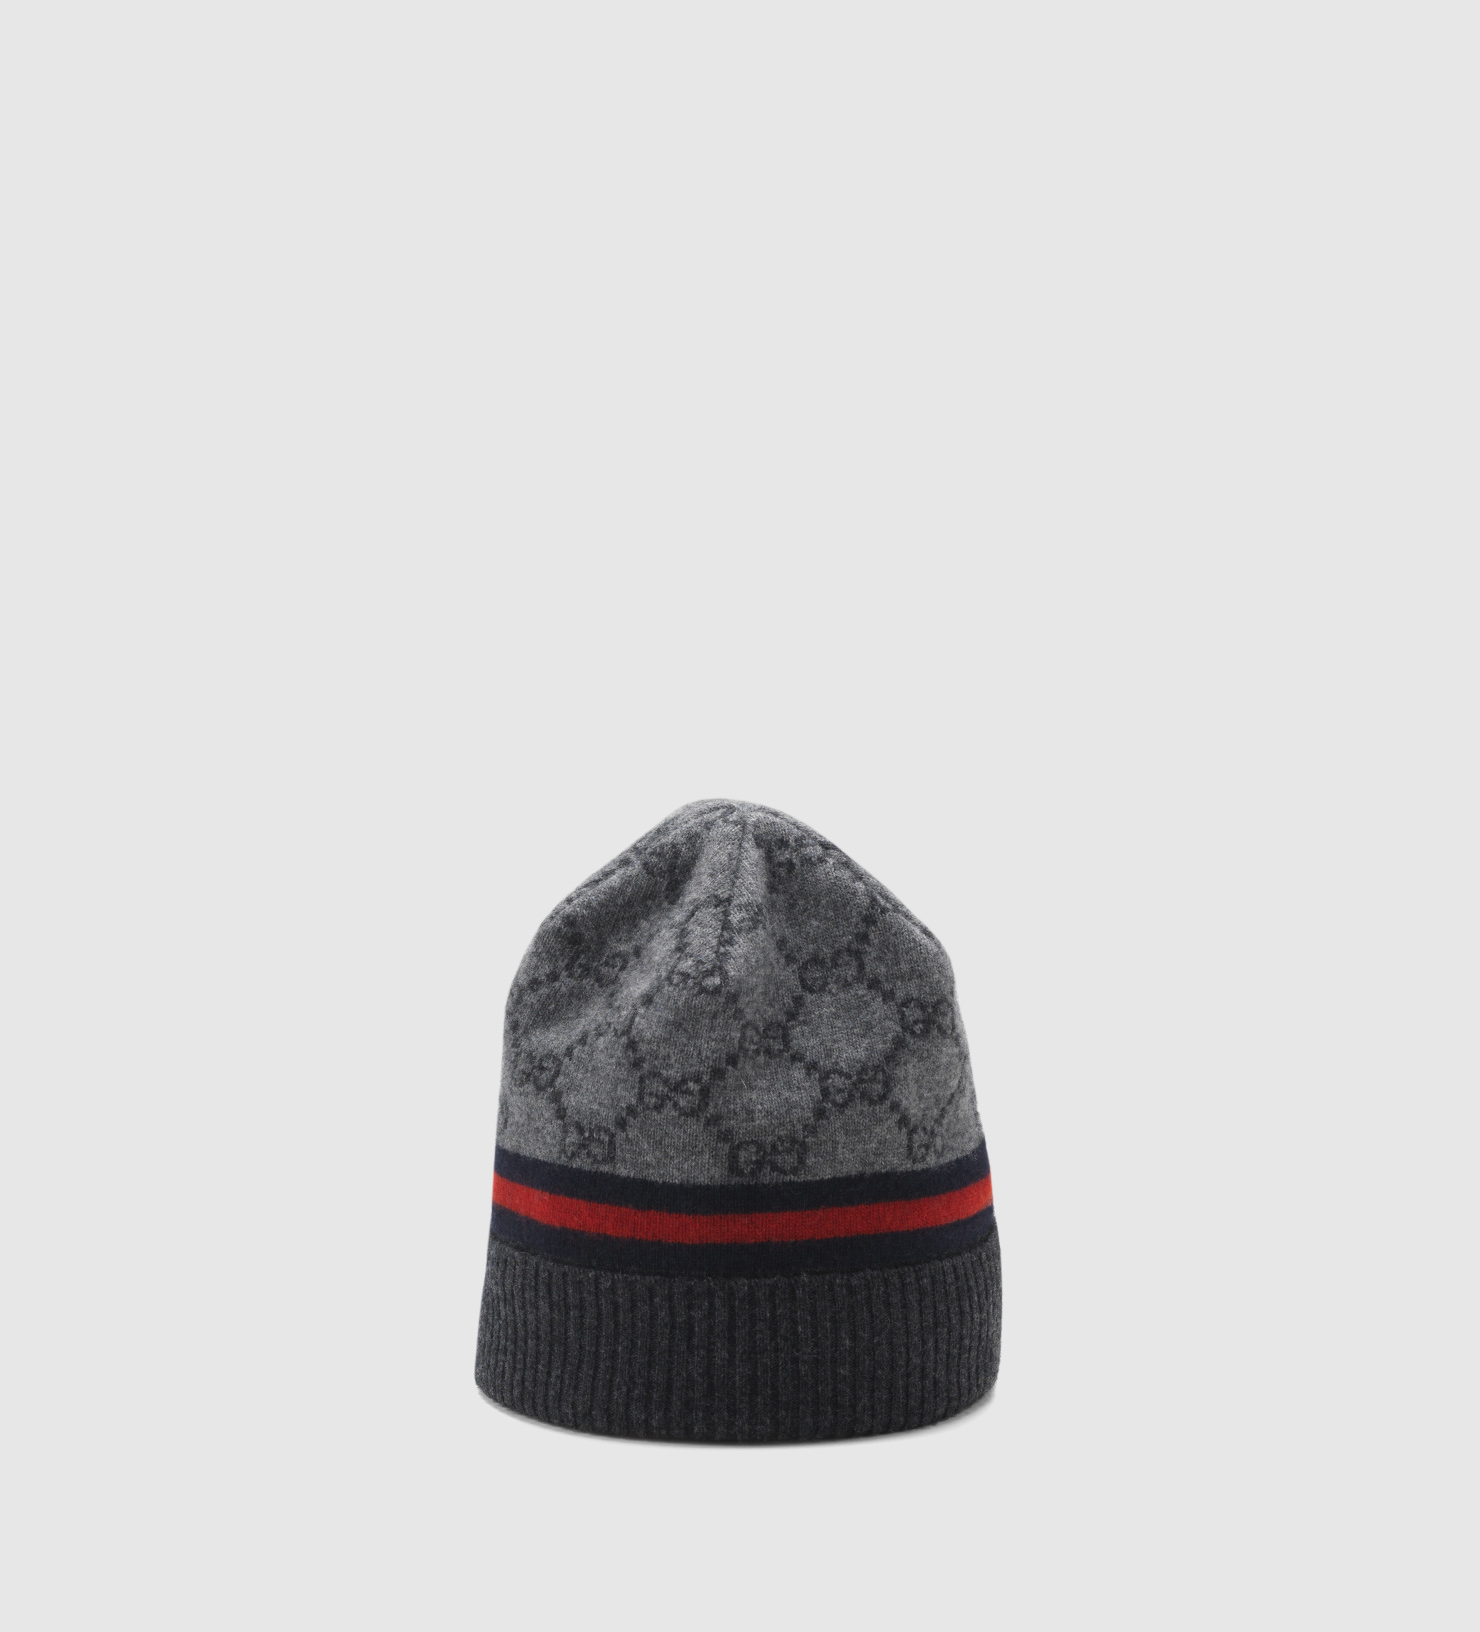 Gucci Gg Pattern Hat With Web Detail in Gray for Men - Lyst 1a82a54c44c